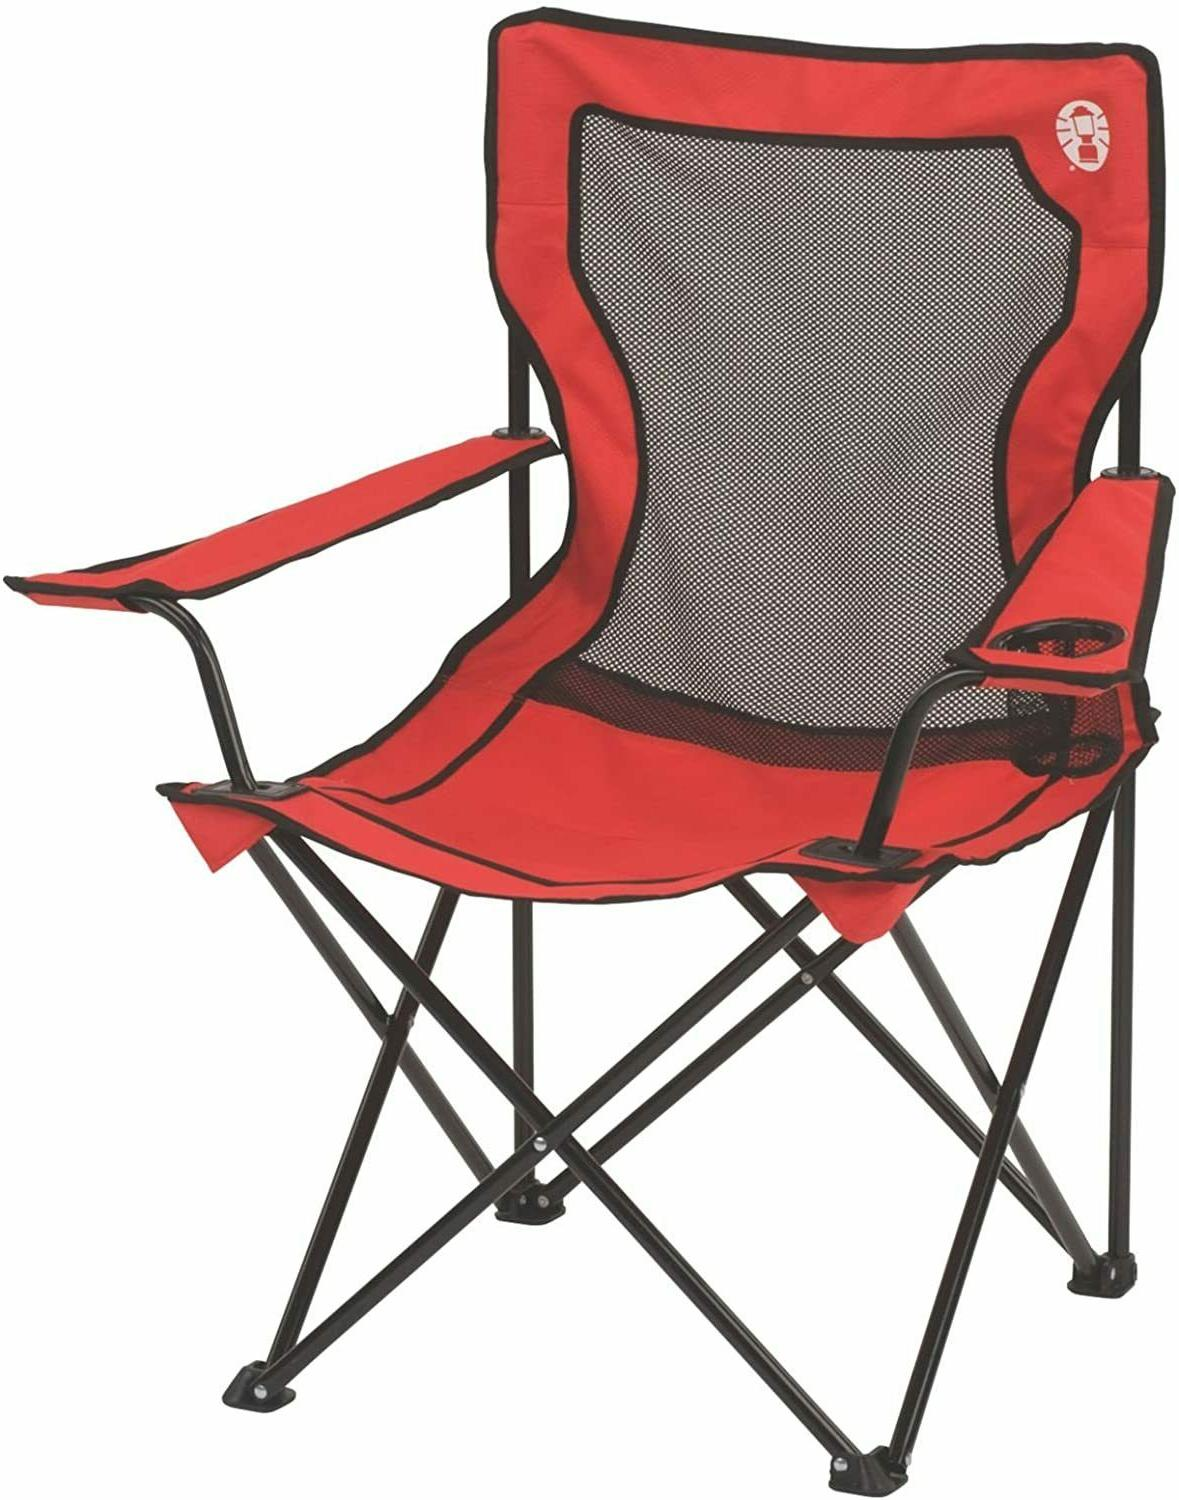 Quad Camping Fishing Chair Portable Broadband Mesh Red Home